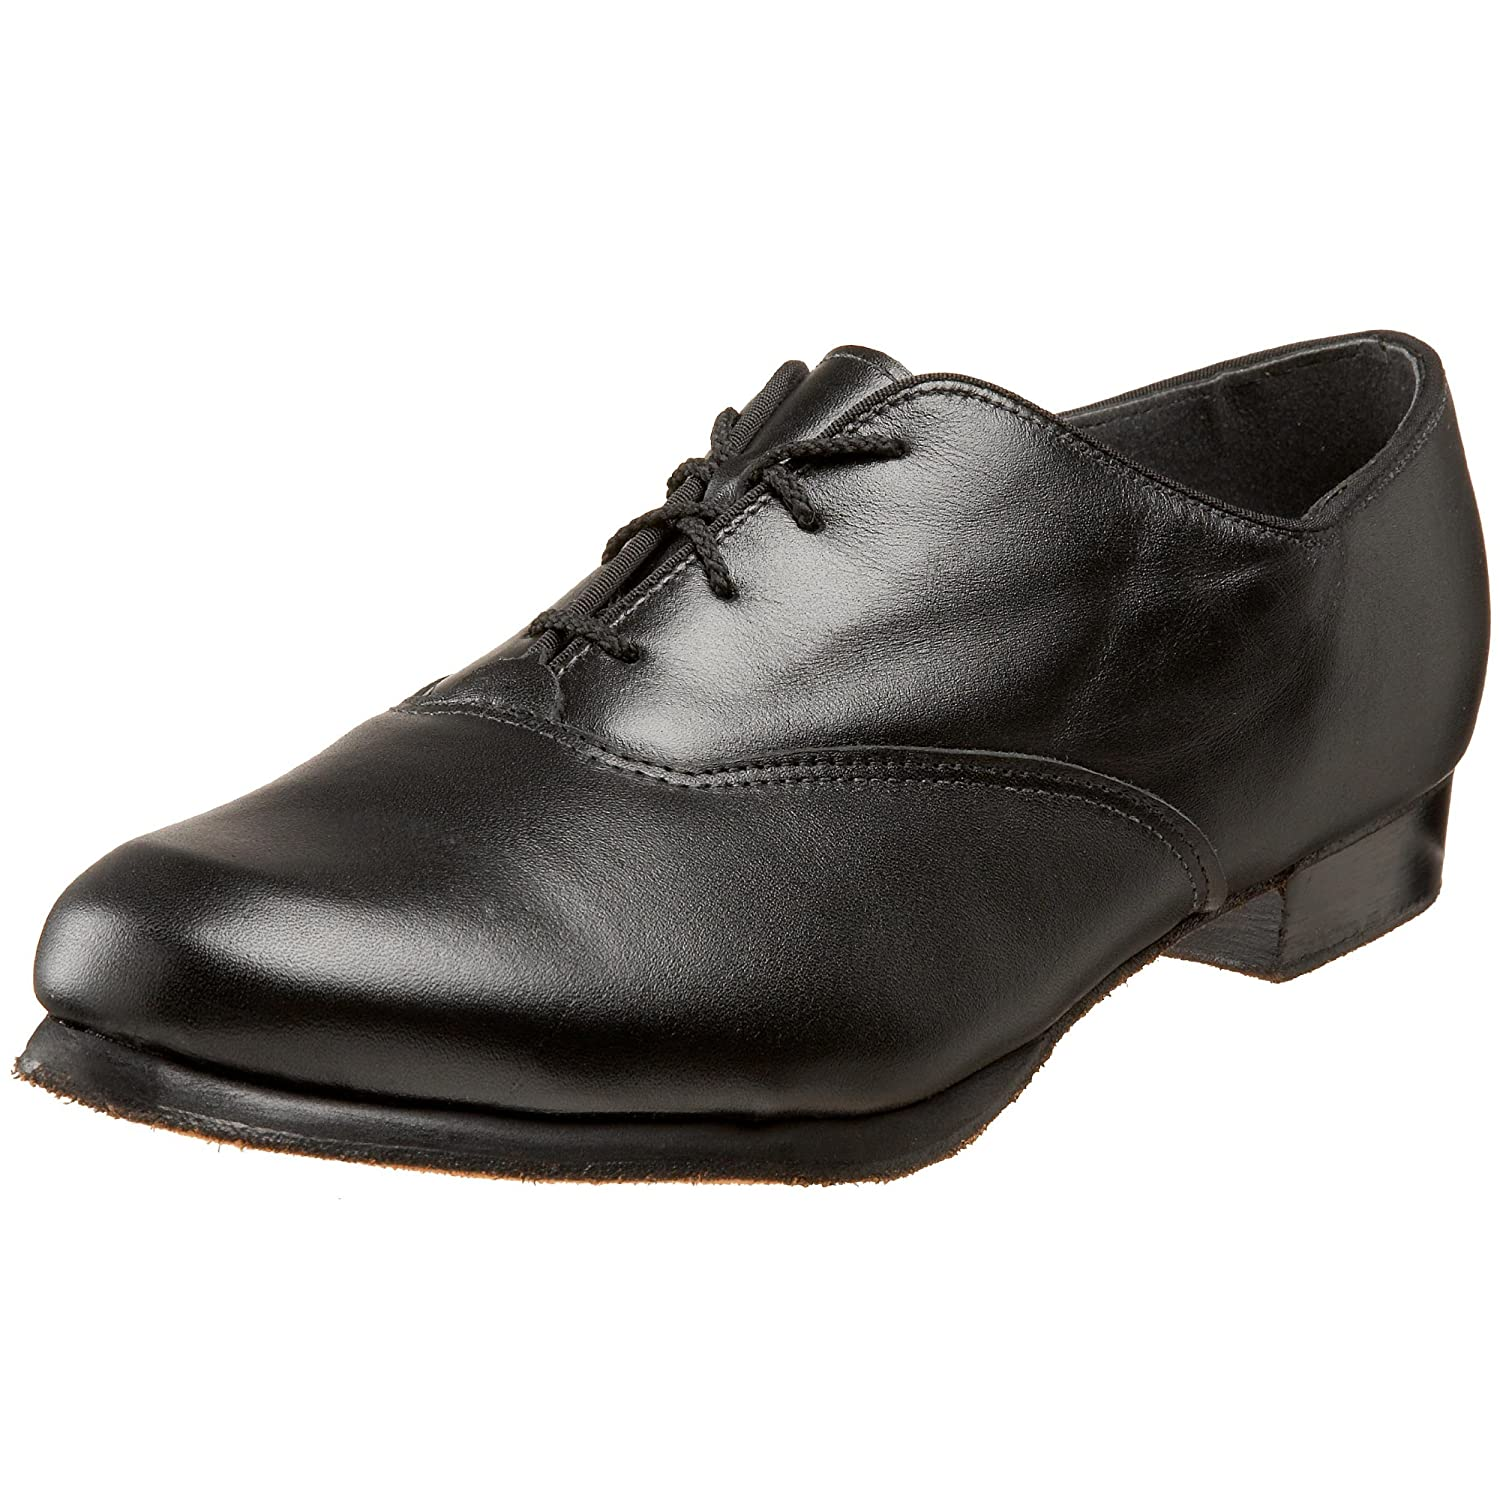 Men's Swing Dance Clothing, Vintage Dance Clothes Mens Dance Shoe Tic-Tac-Toes Mens Hartwick Ballerina $106.00 AT vintagedancer.com